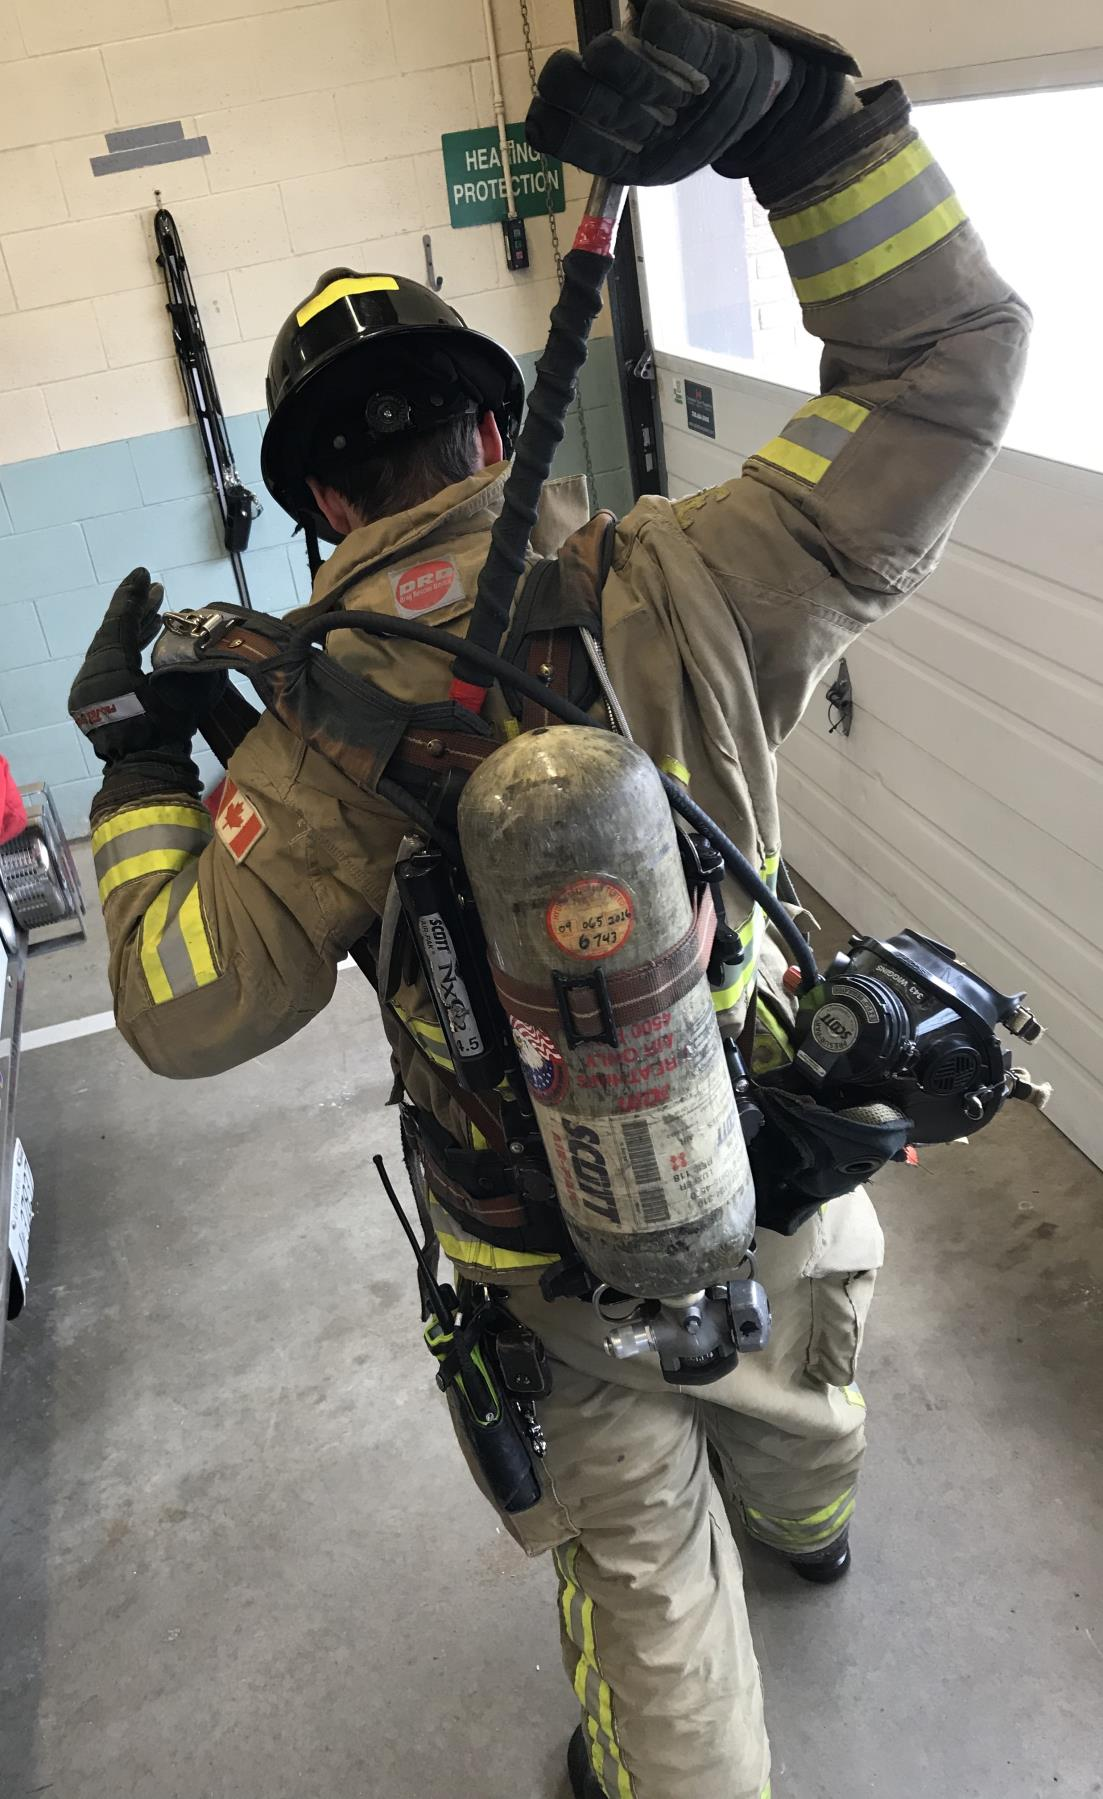 firefighter Halligan Carry_image two_start move.jpg